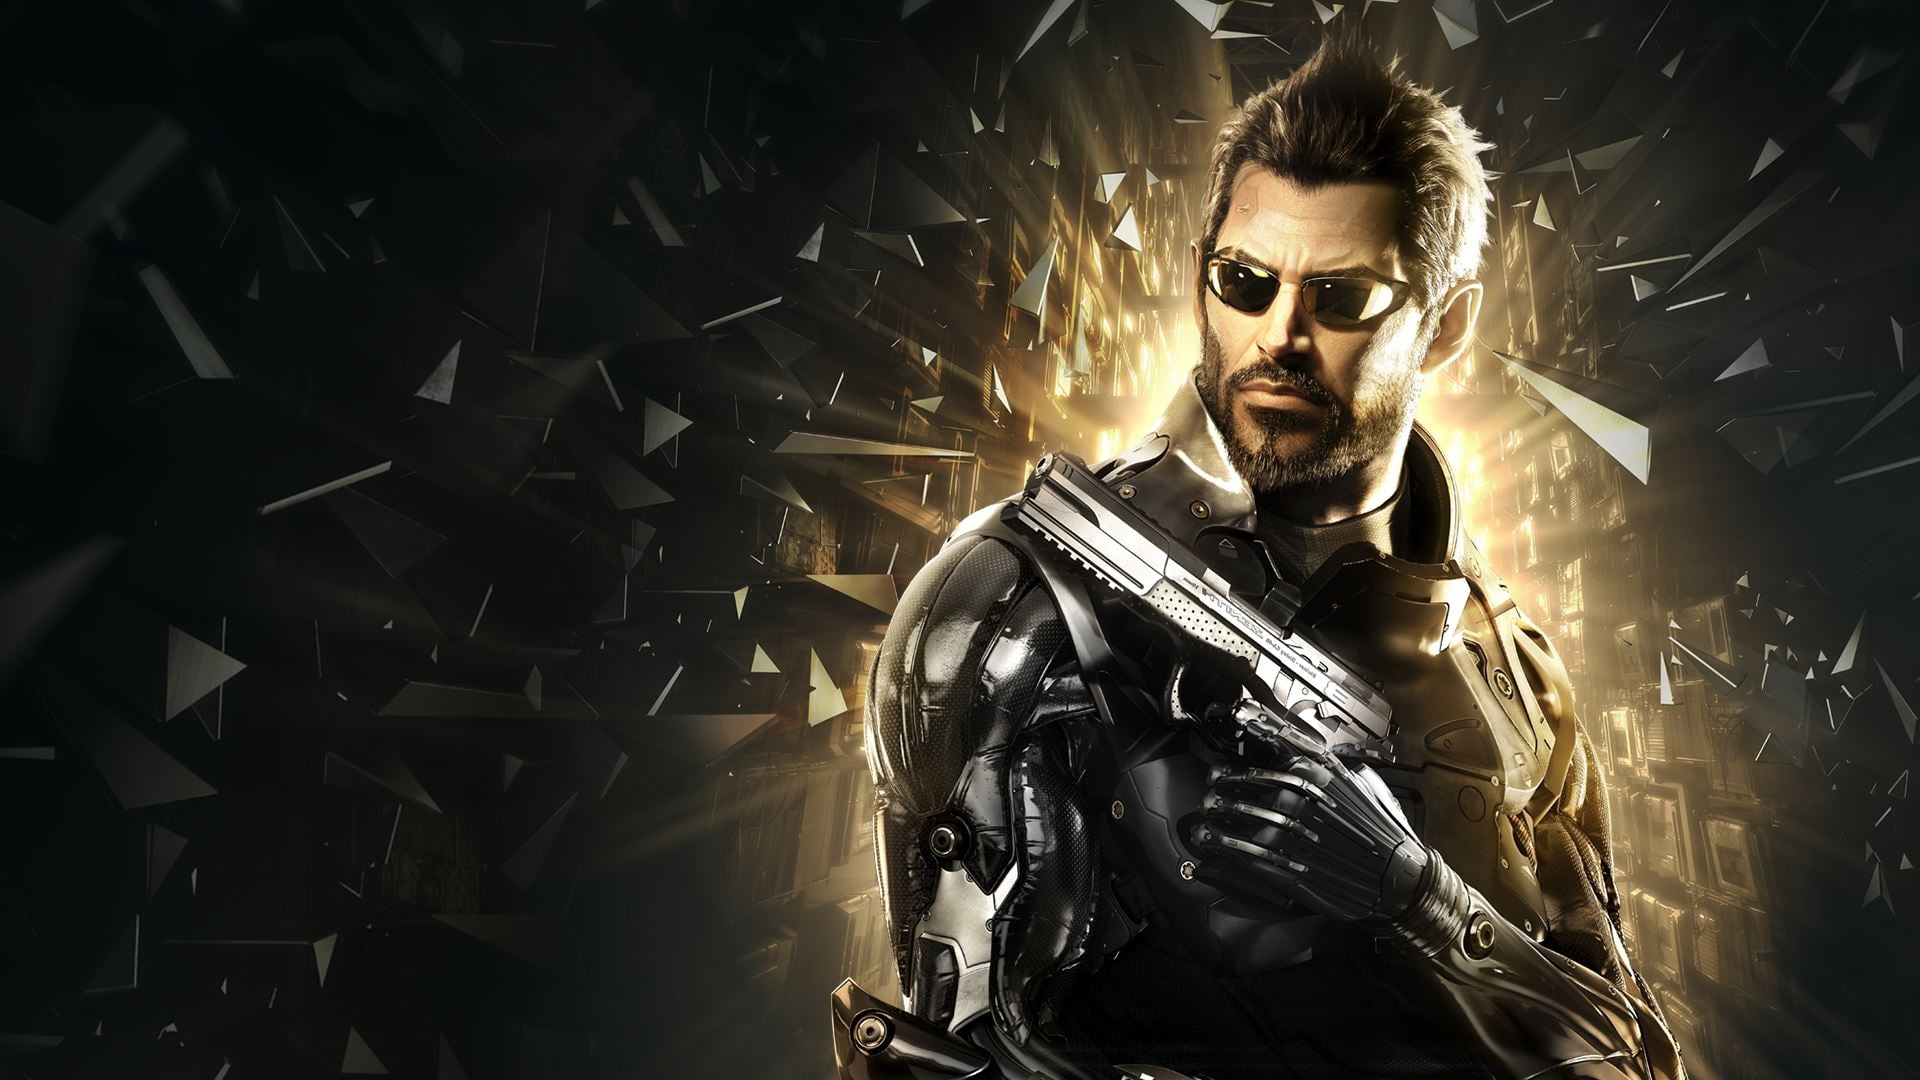 21+ Deus Ex: Mankind Divided Wallpapers HD High Quality